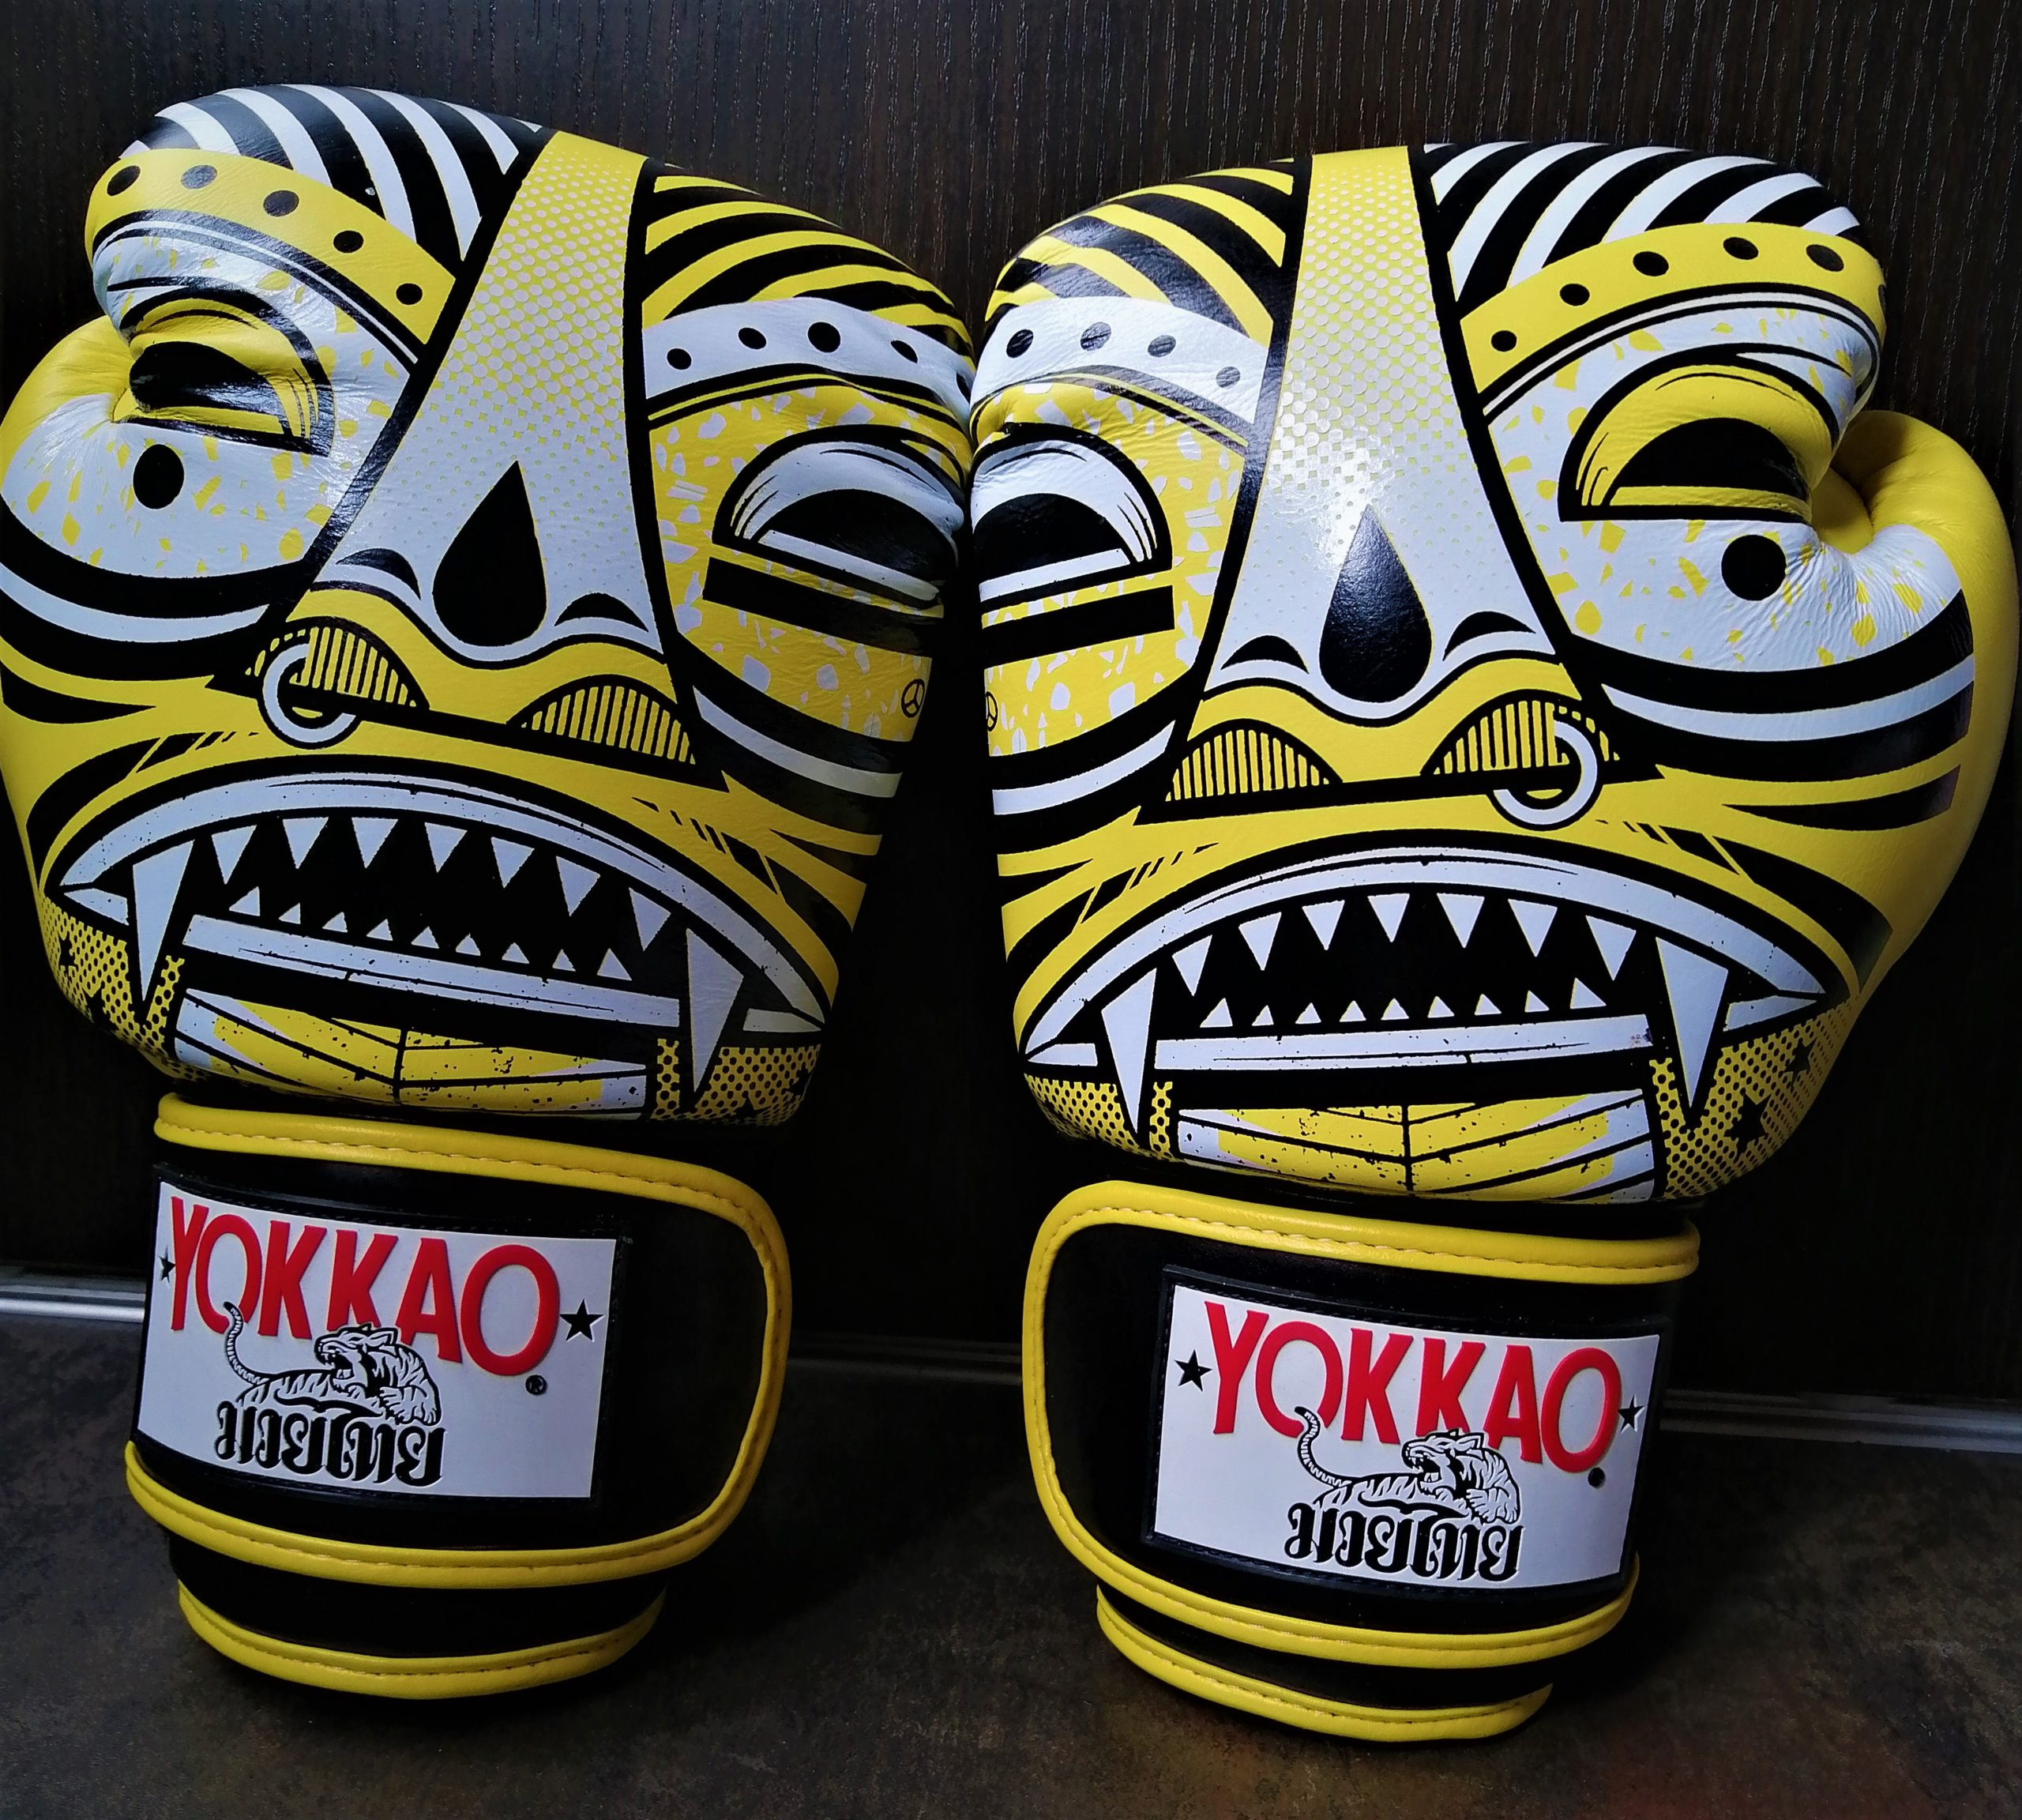 Yokkao Mayan Muay Thai Gloves Review